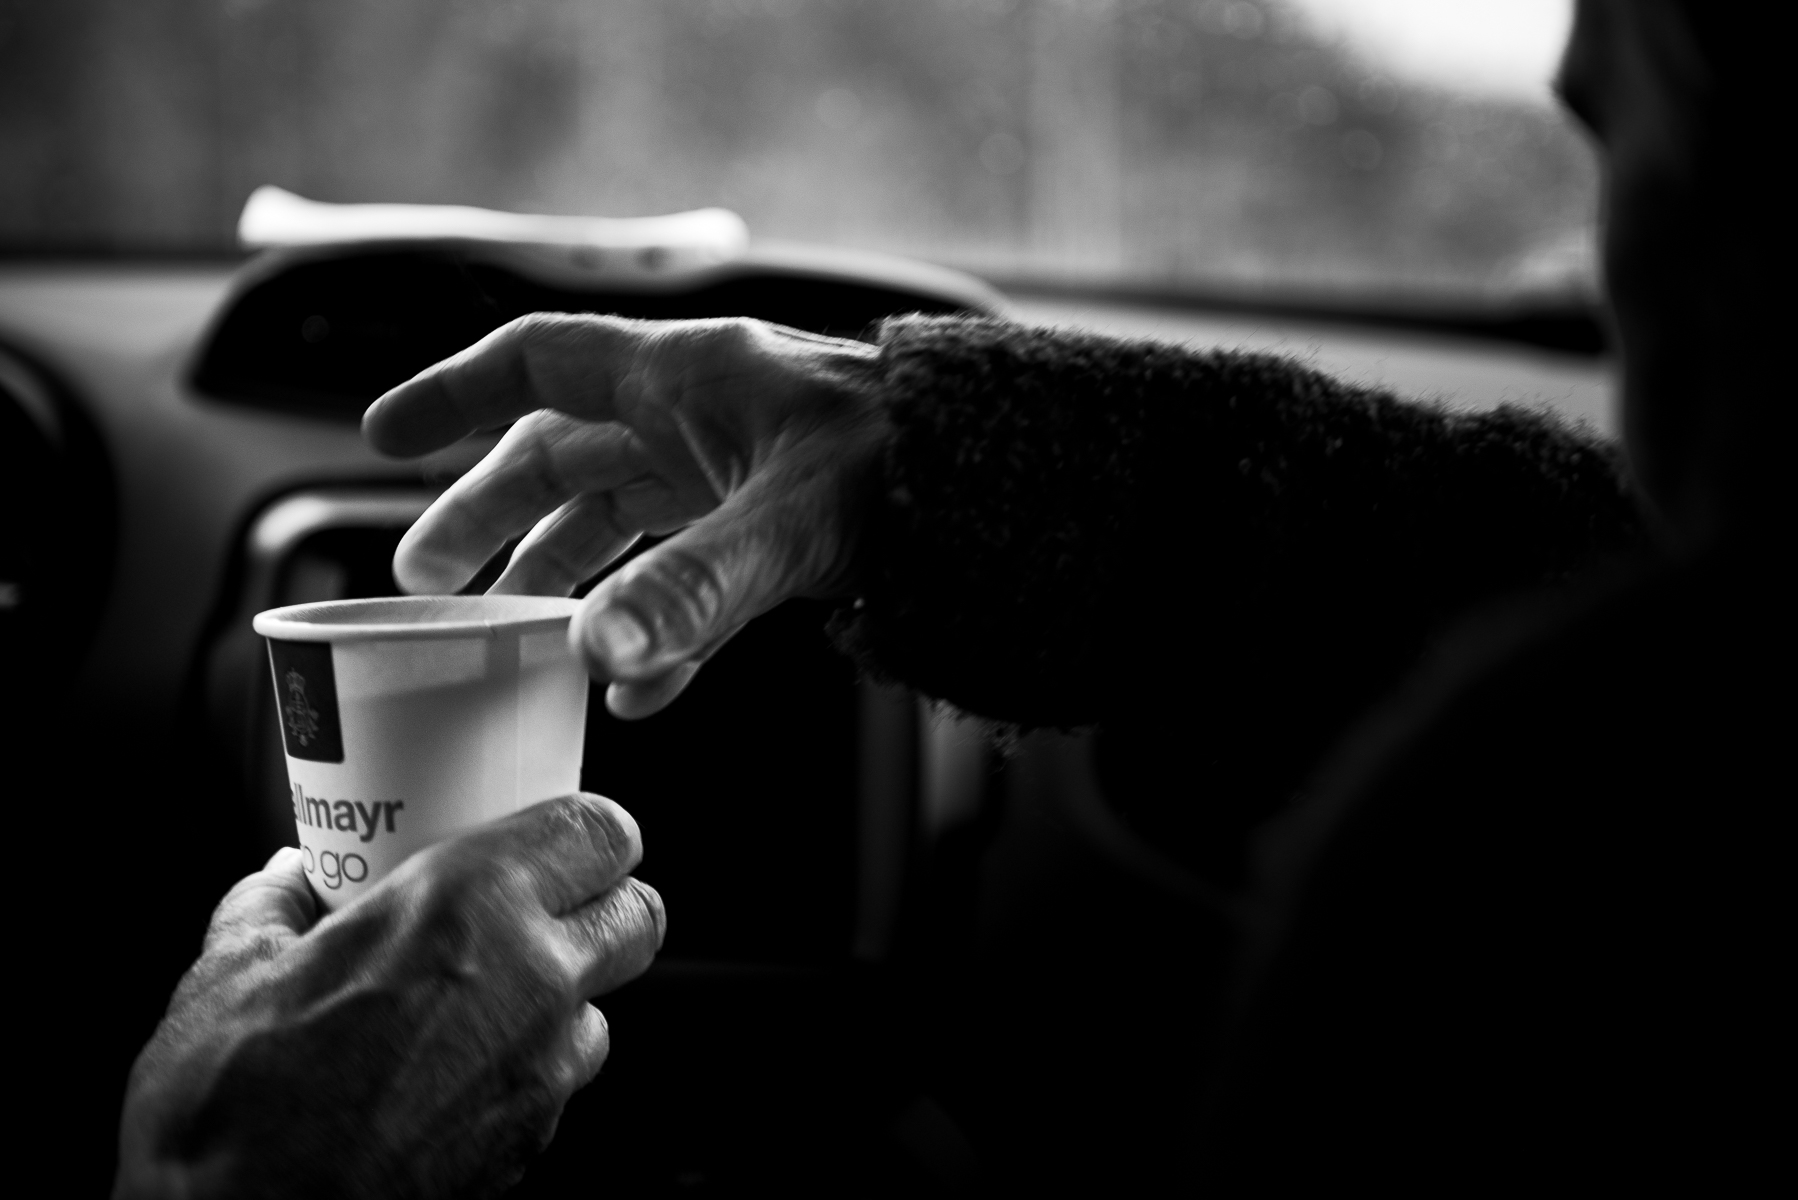 After a quick breakfast snack at an autobahn rest stop, mom hands dad a cup of coffee. Germany, May 21, 2019.